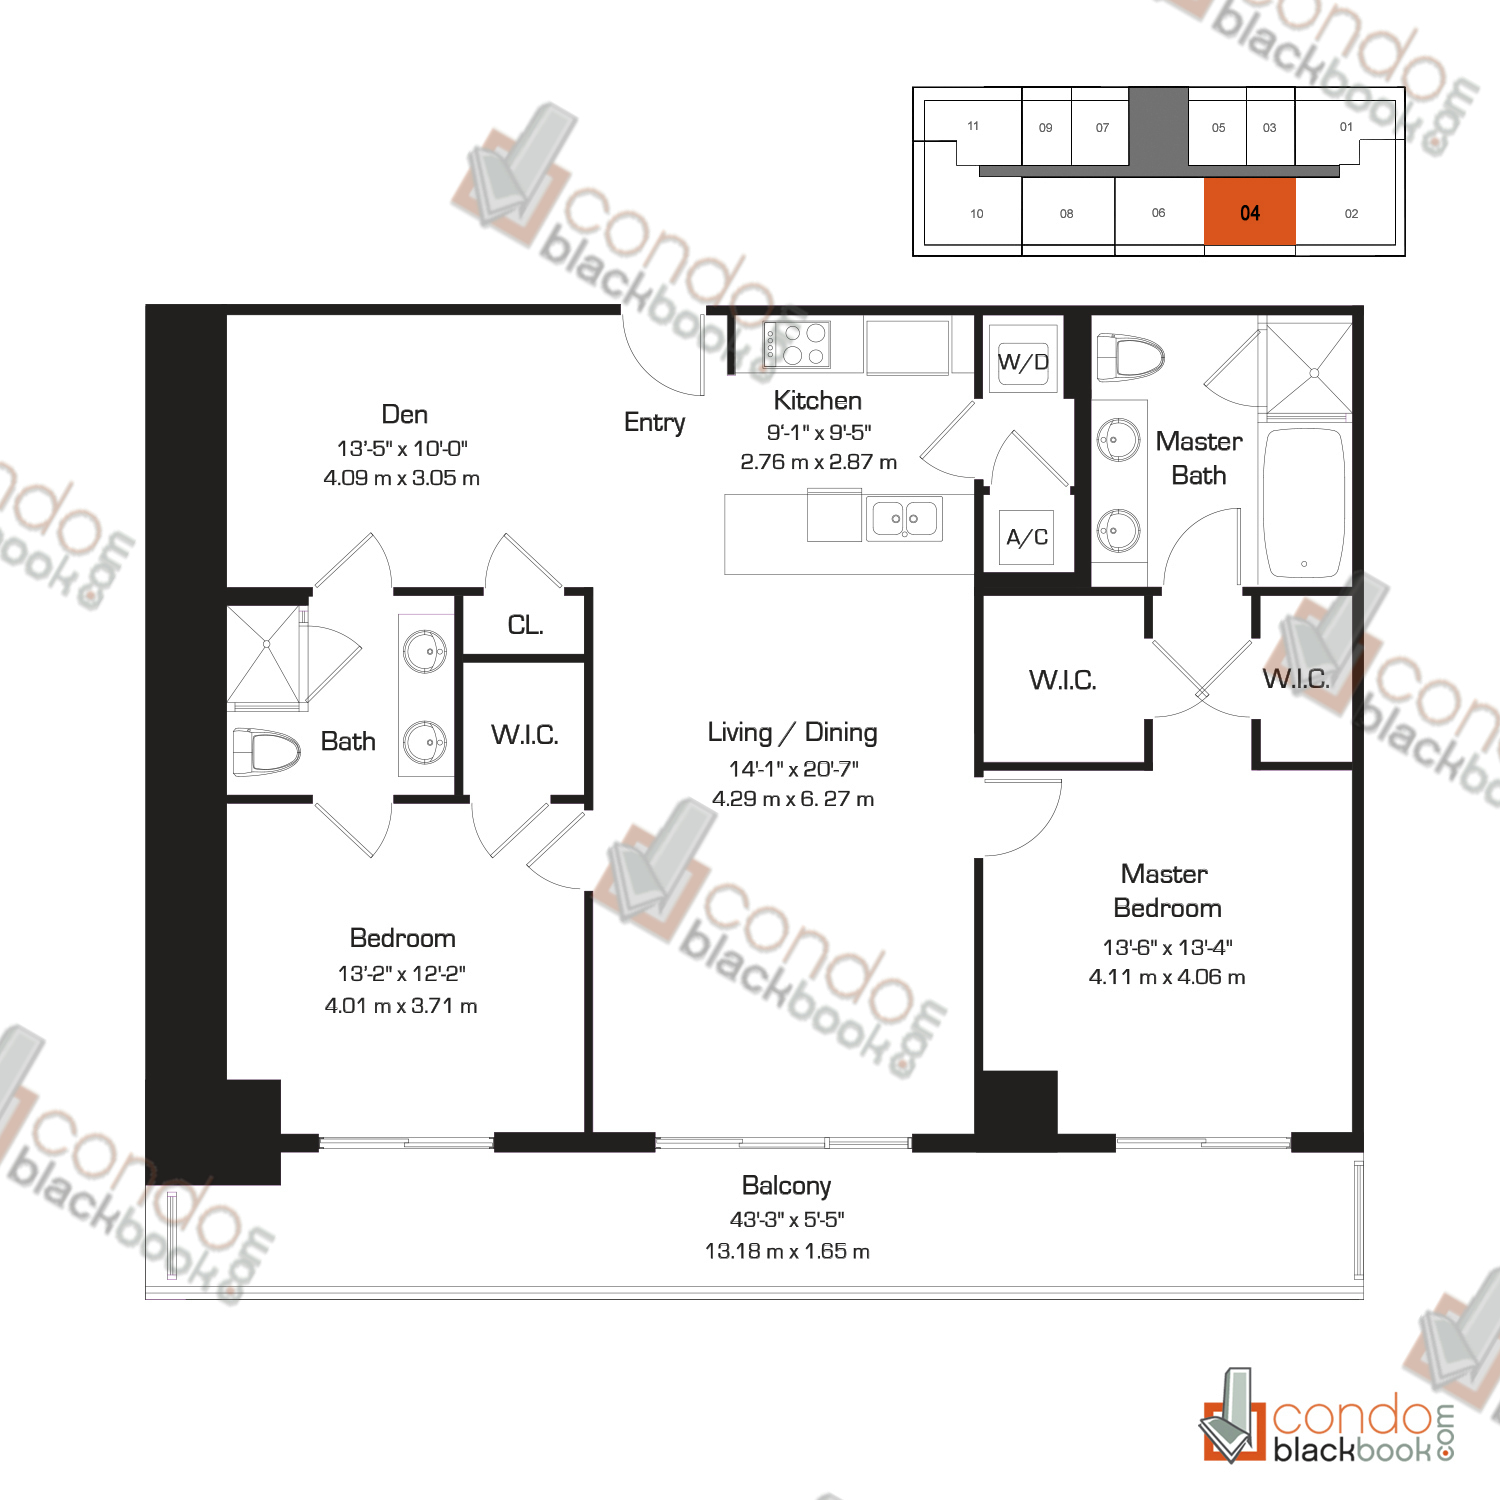 Floor plan for 50 Biscayne Downtown Miami Miami, model G, line 04, 2/2+Den bedrooms, 1,357 sq ft